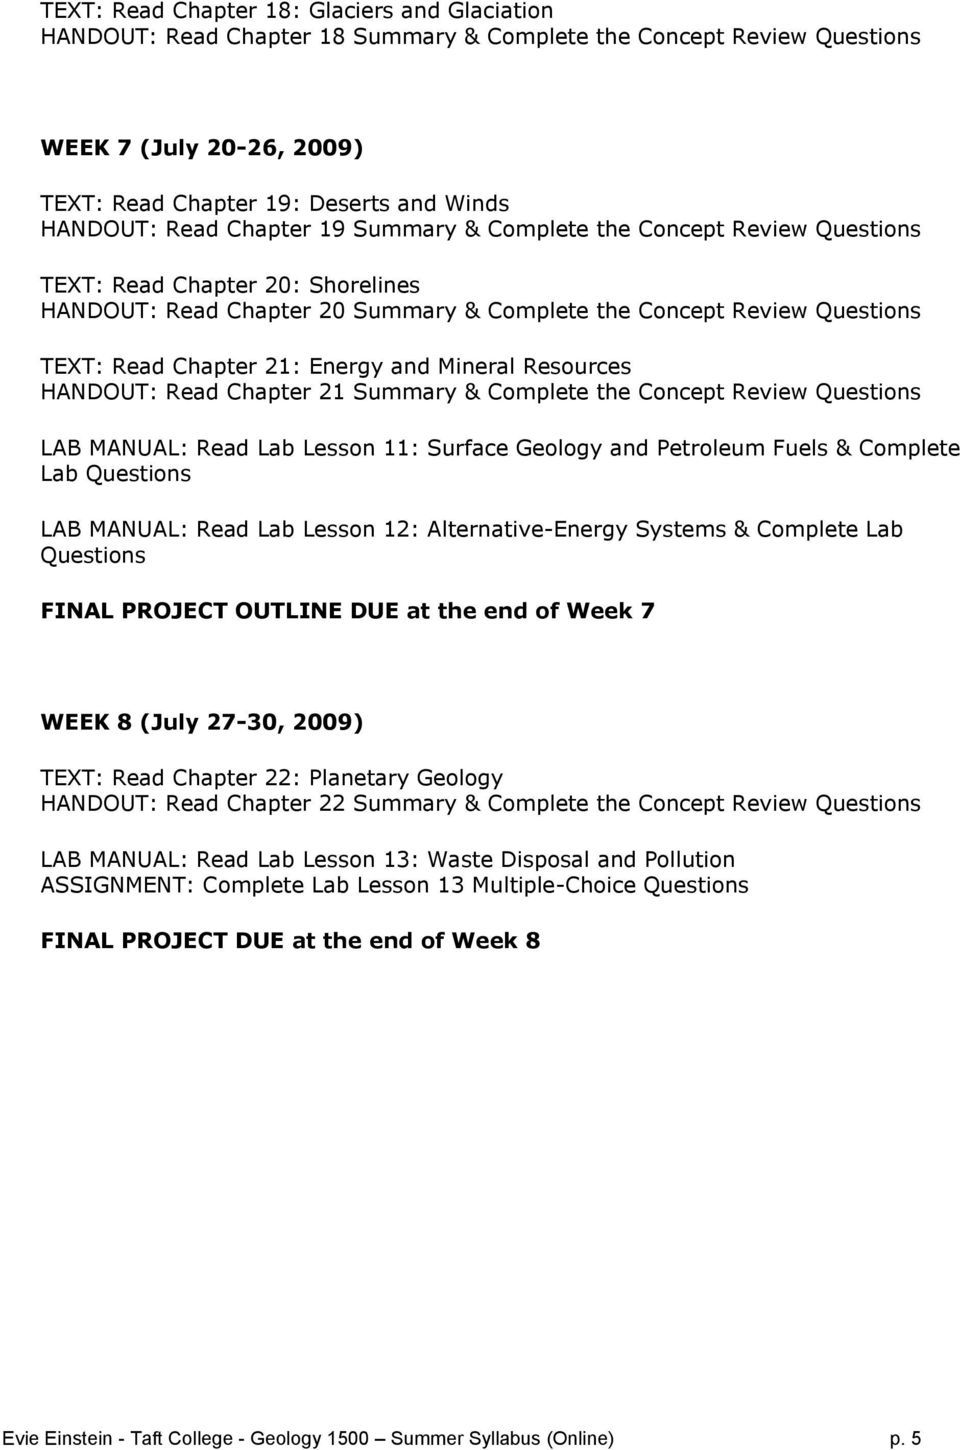 Energy and Mineral Resources HANDOUT: Read Chapter 21 Summary & Complete the Concept Review Questions LAB MANUAL: Read Lab Lesson 11: Surface Geology and Petroleum Fuels & Complete Lab Questions LAB